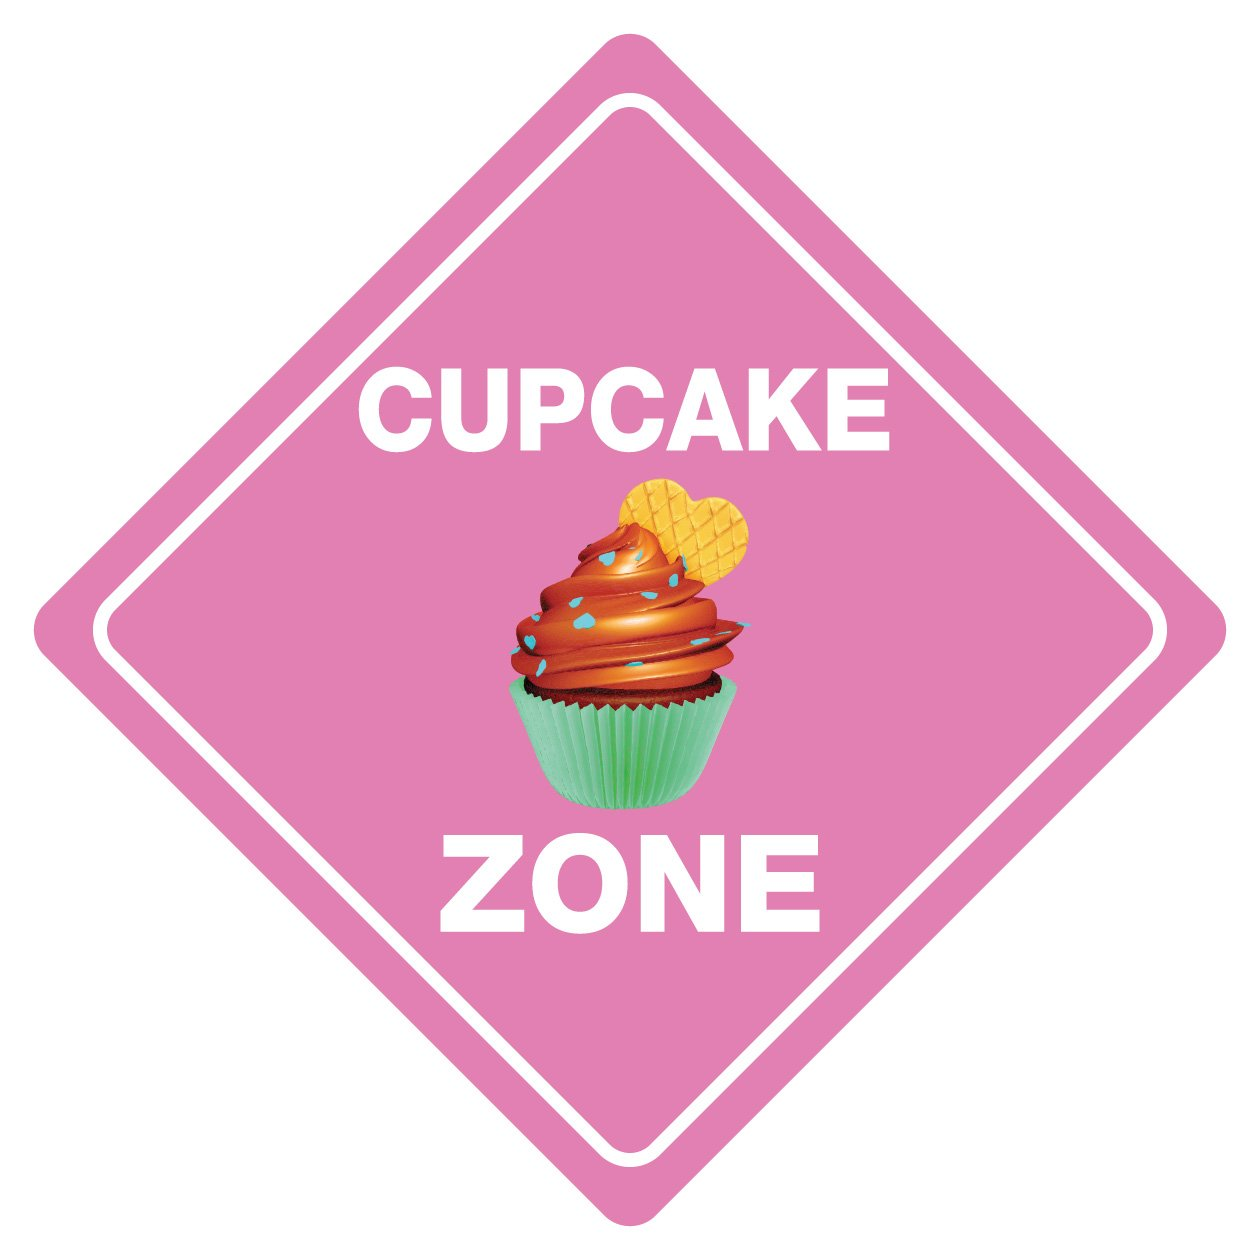 CUPCAKE ZONE Funny Novelty Crossing Sign